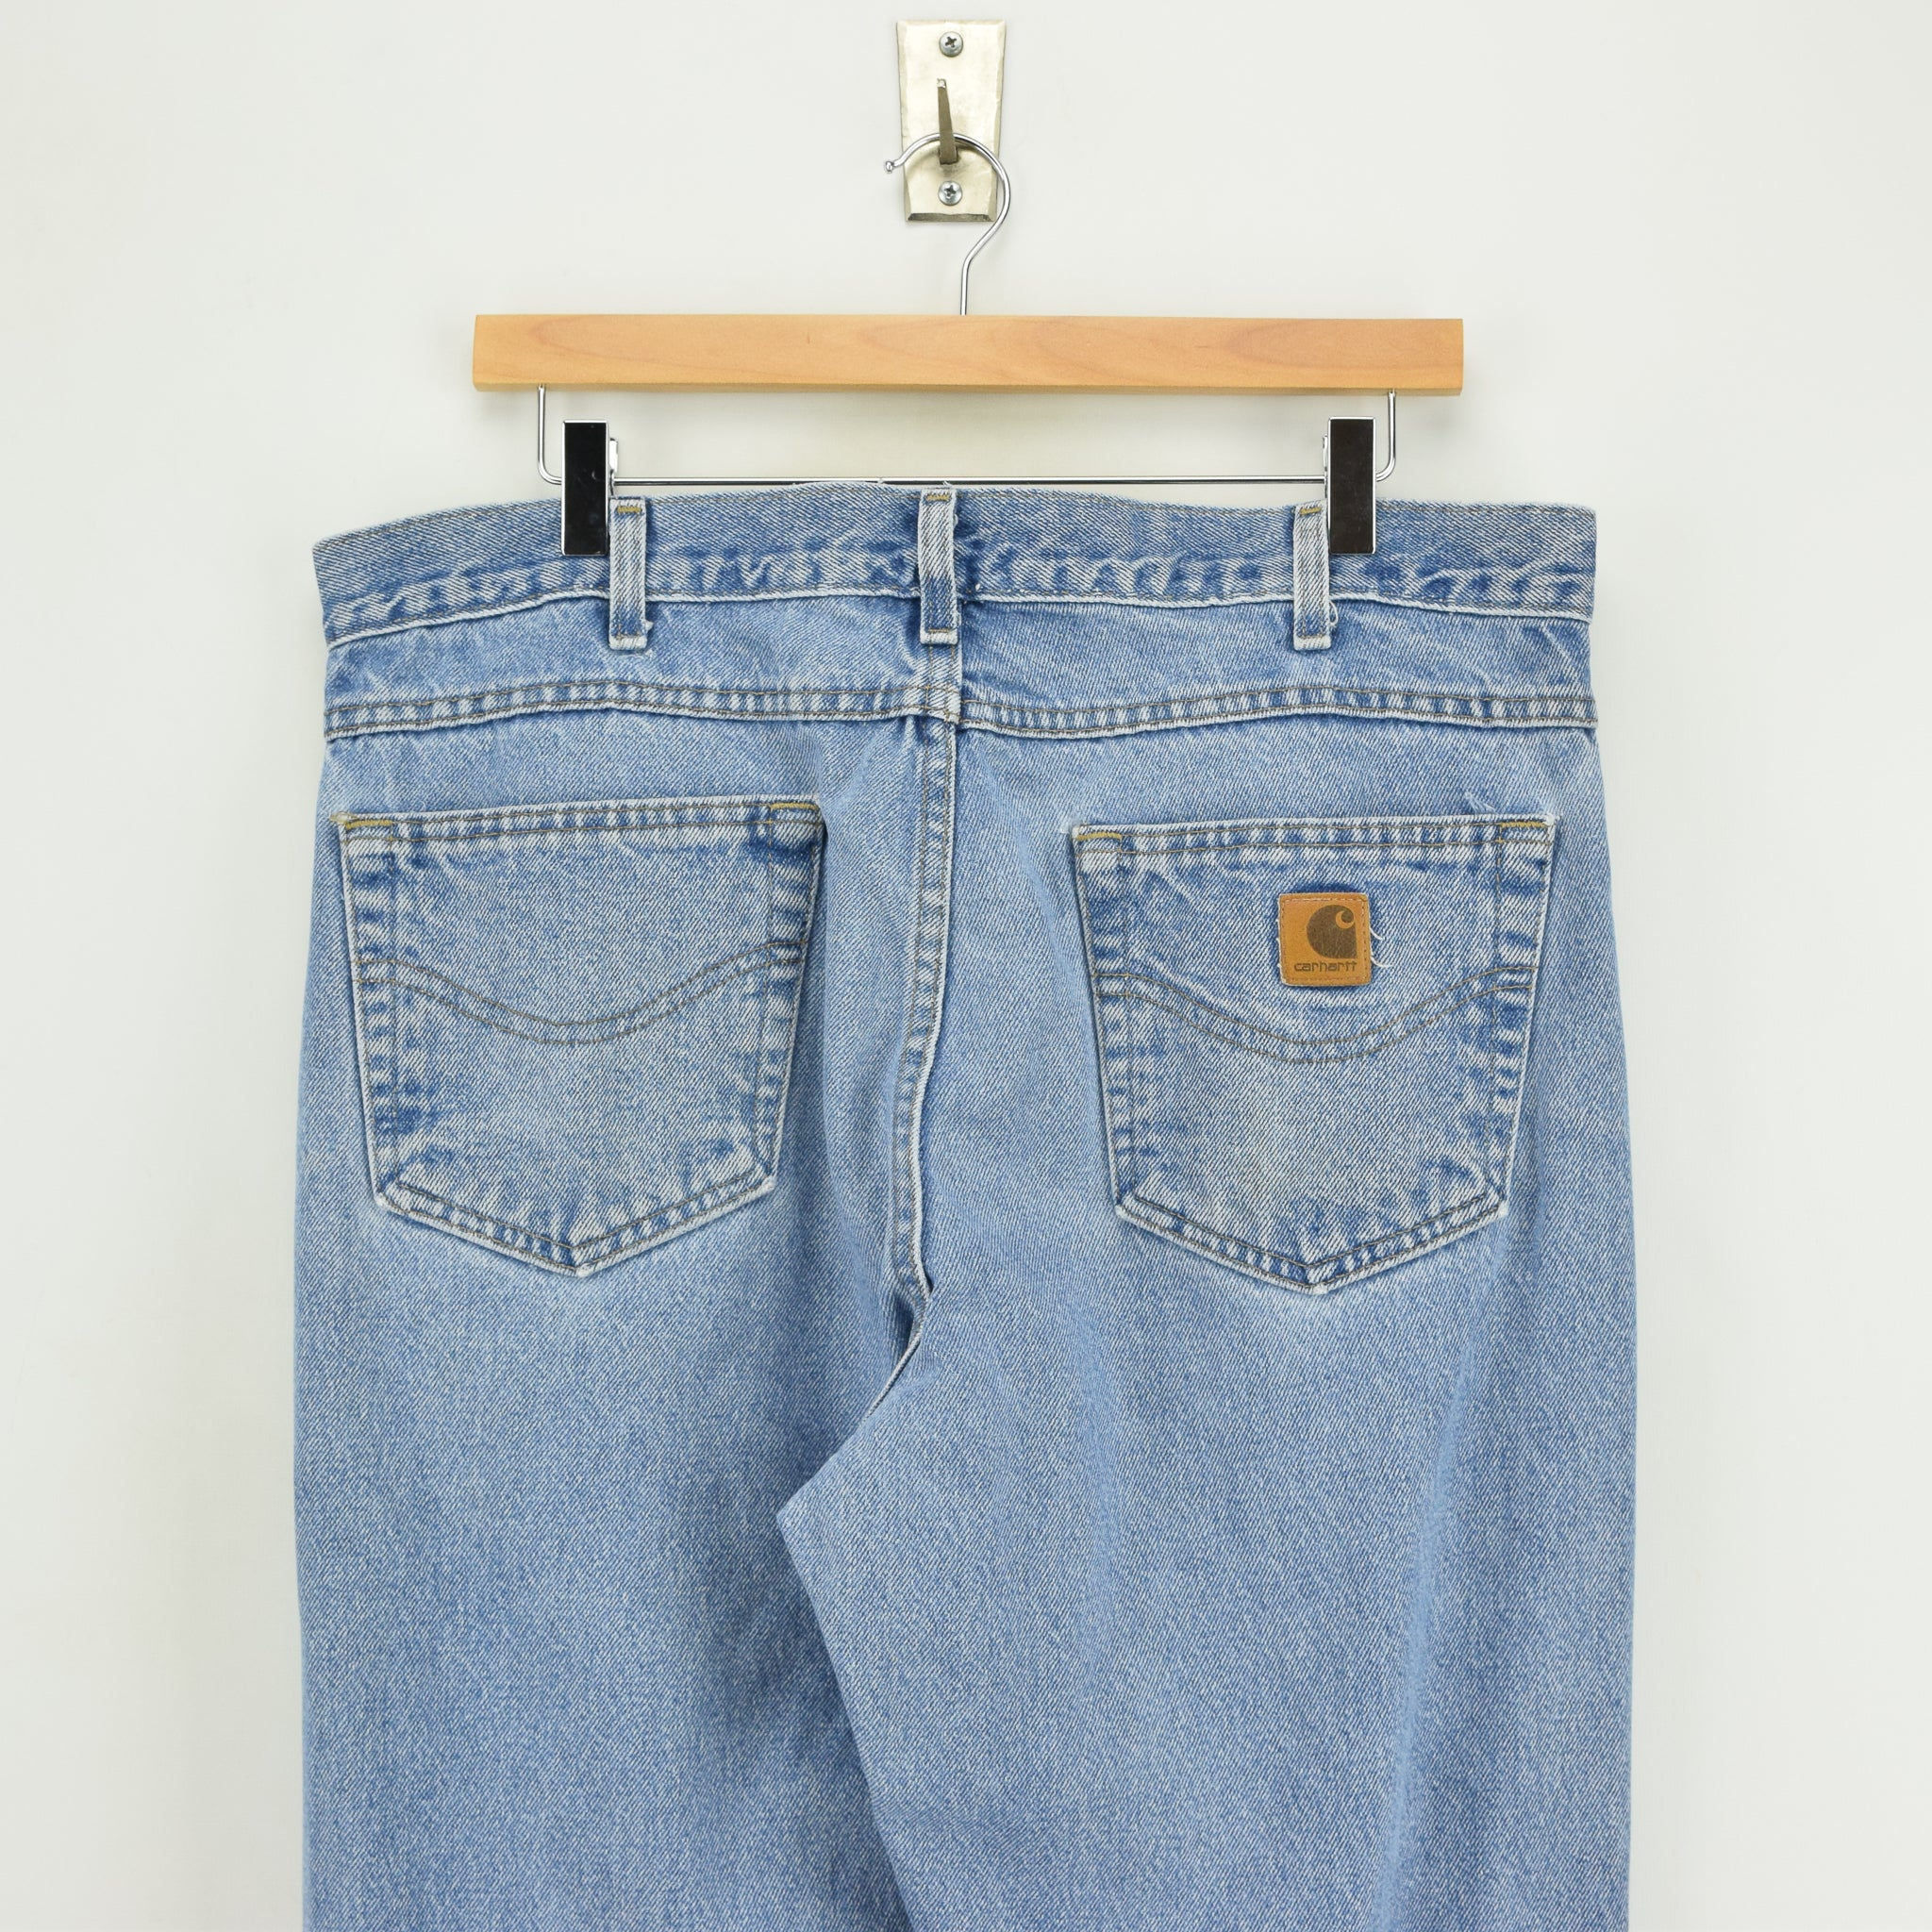 Vintage Carhartt Blue Denim Jeans Work Pants 34 W 32 L back pocket waist badge